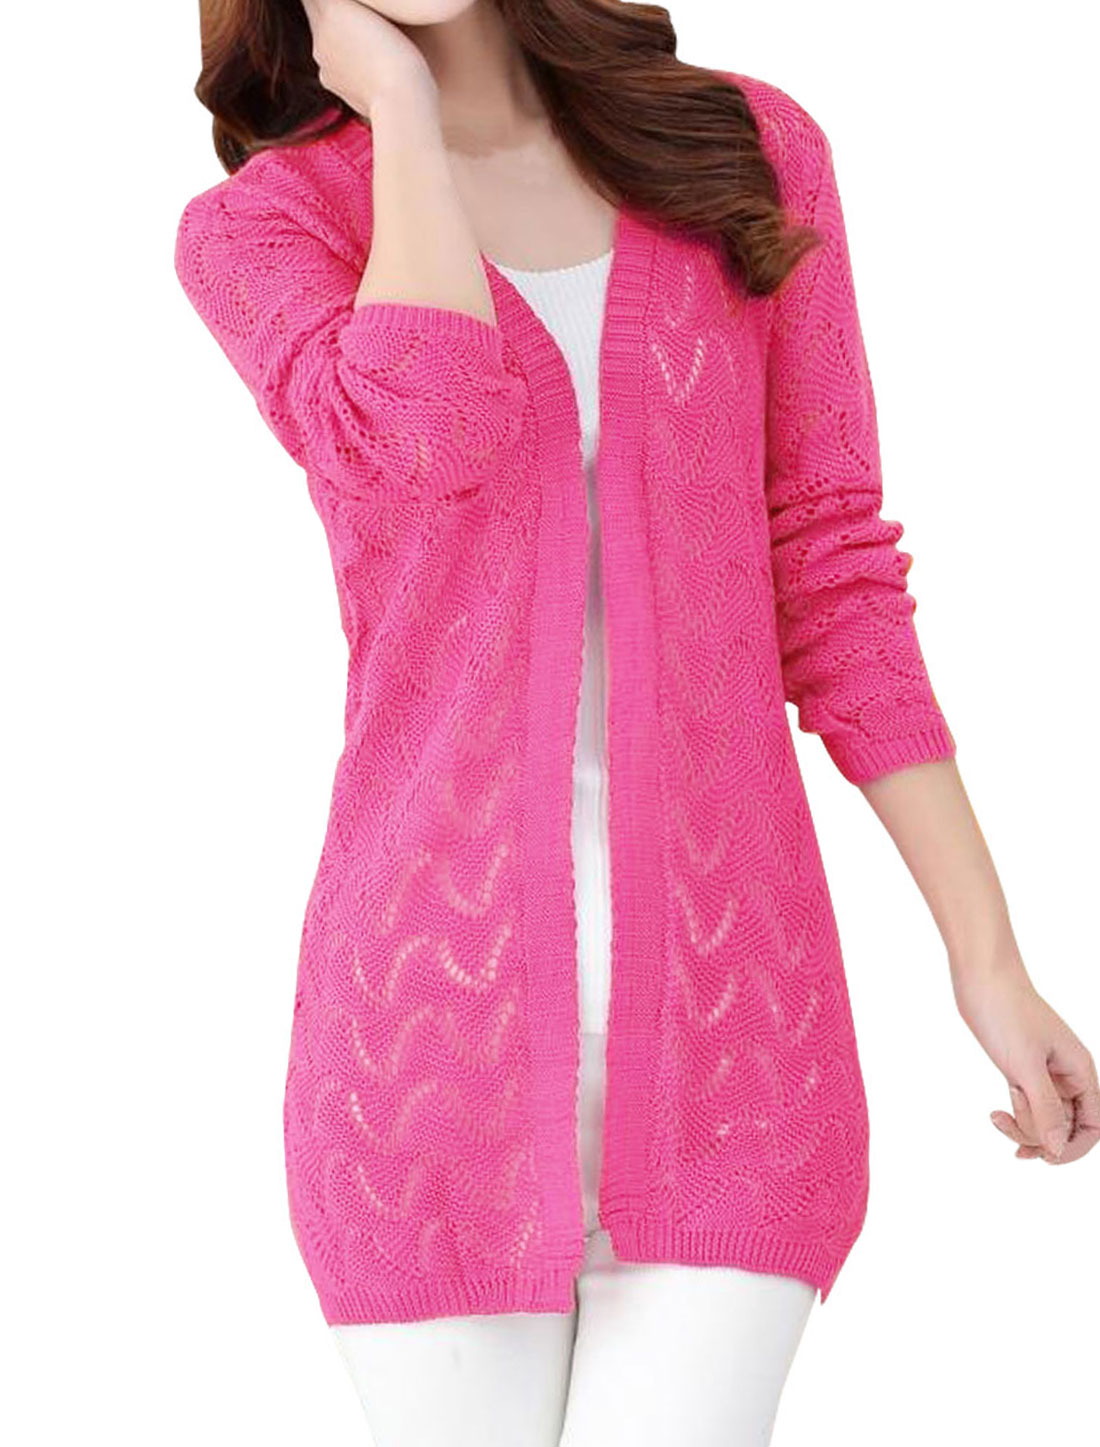 Woman Hollow Out Open Front Split Sides Casual Knit Cardigan Fuchsia S